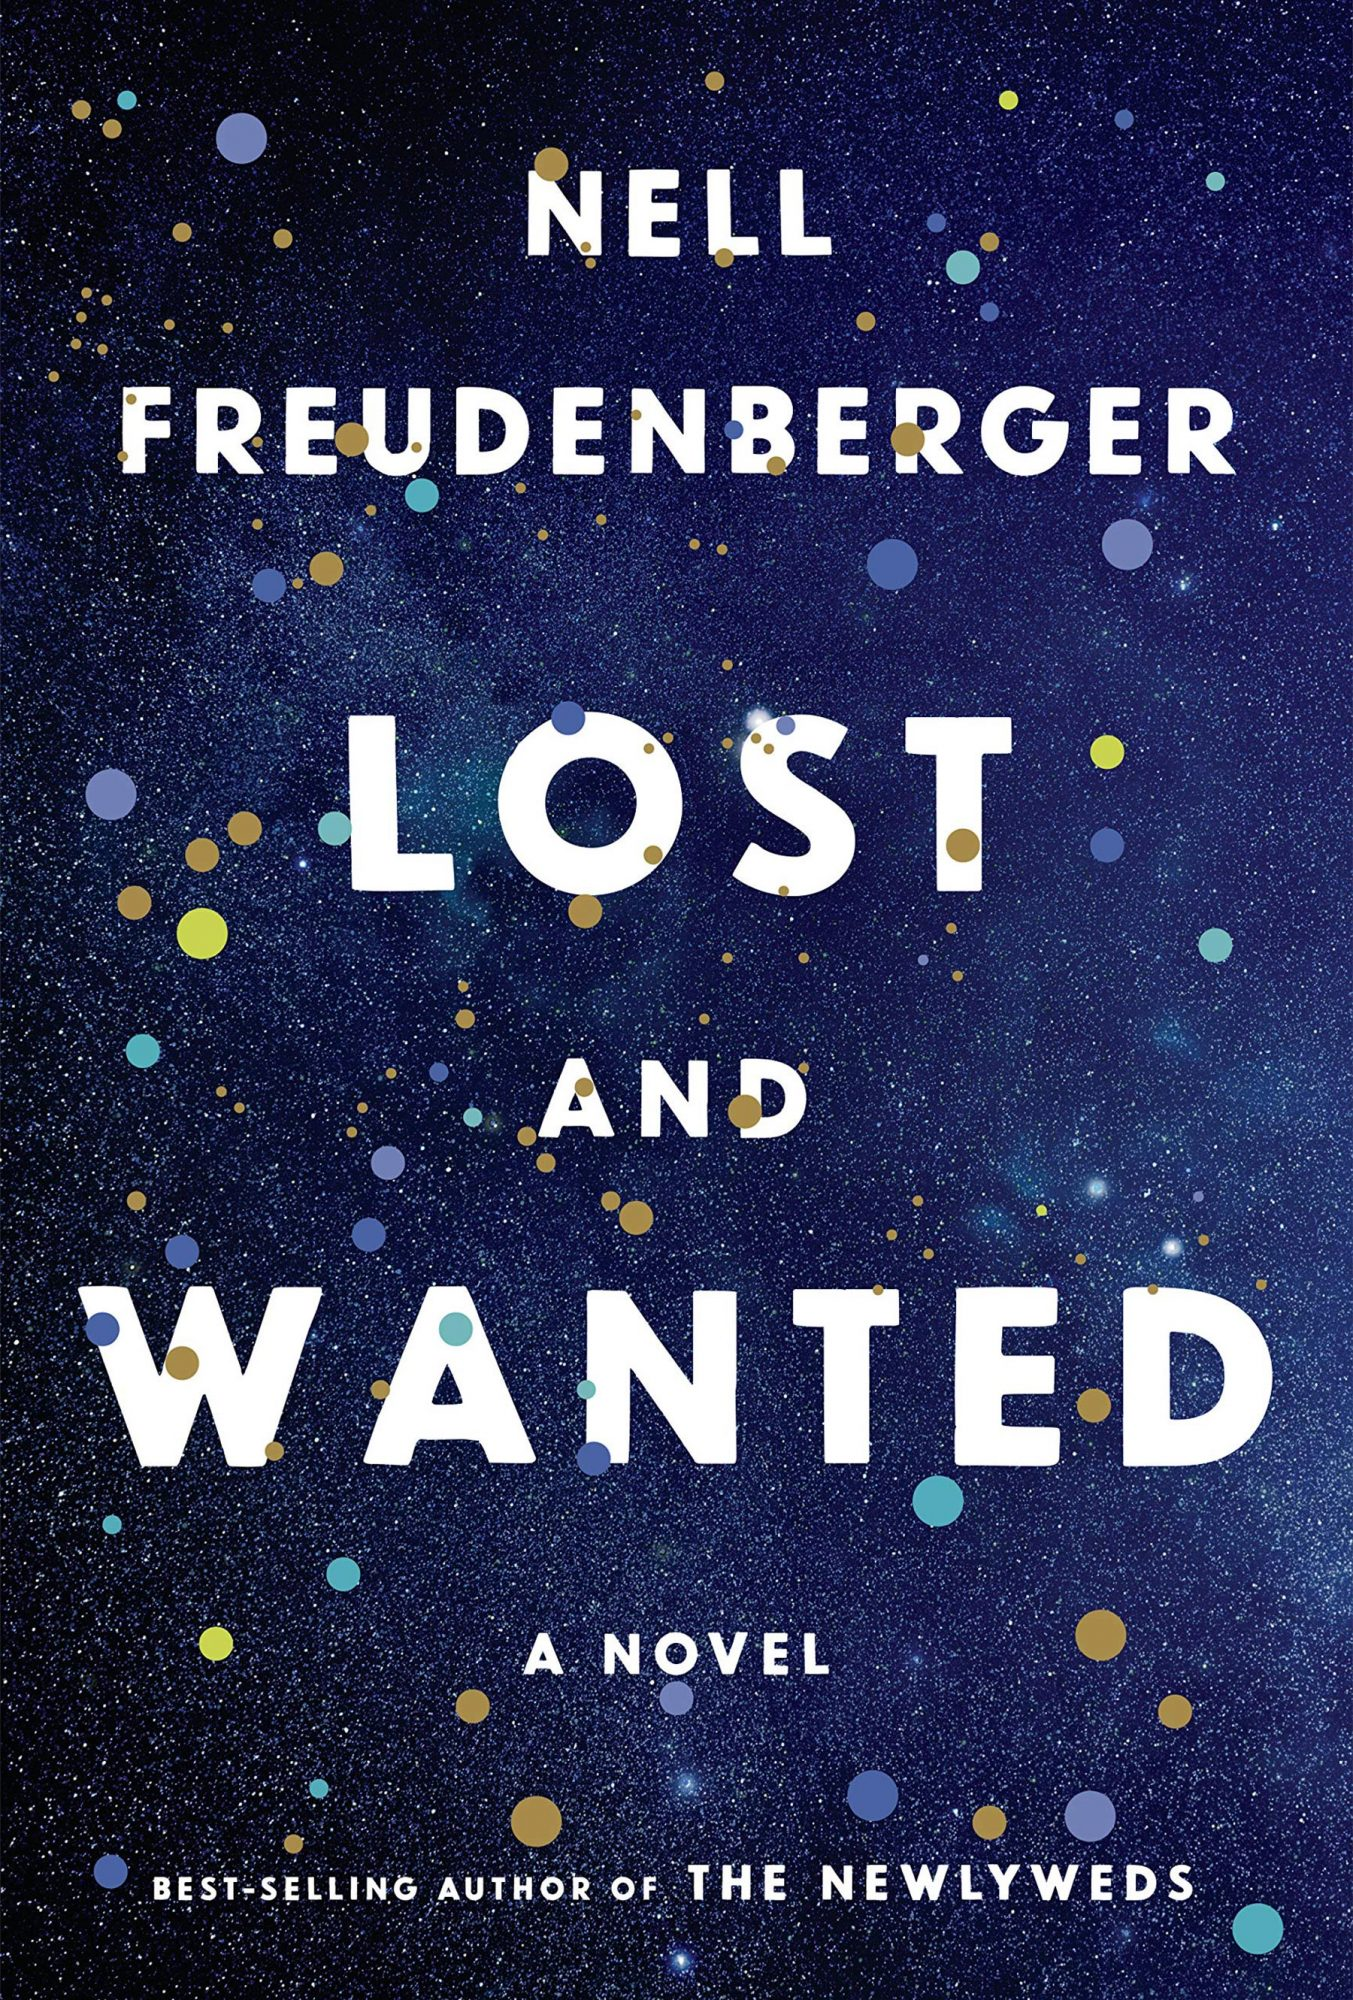 Nell Freudenberger, Lost and Found Publisher: Knopf